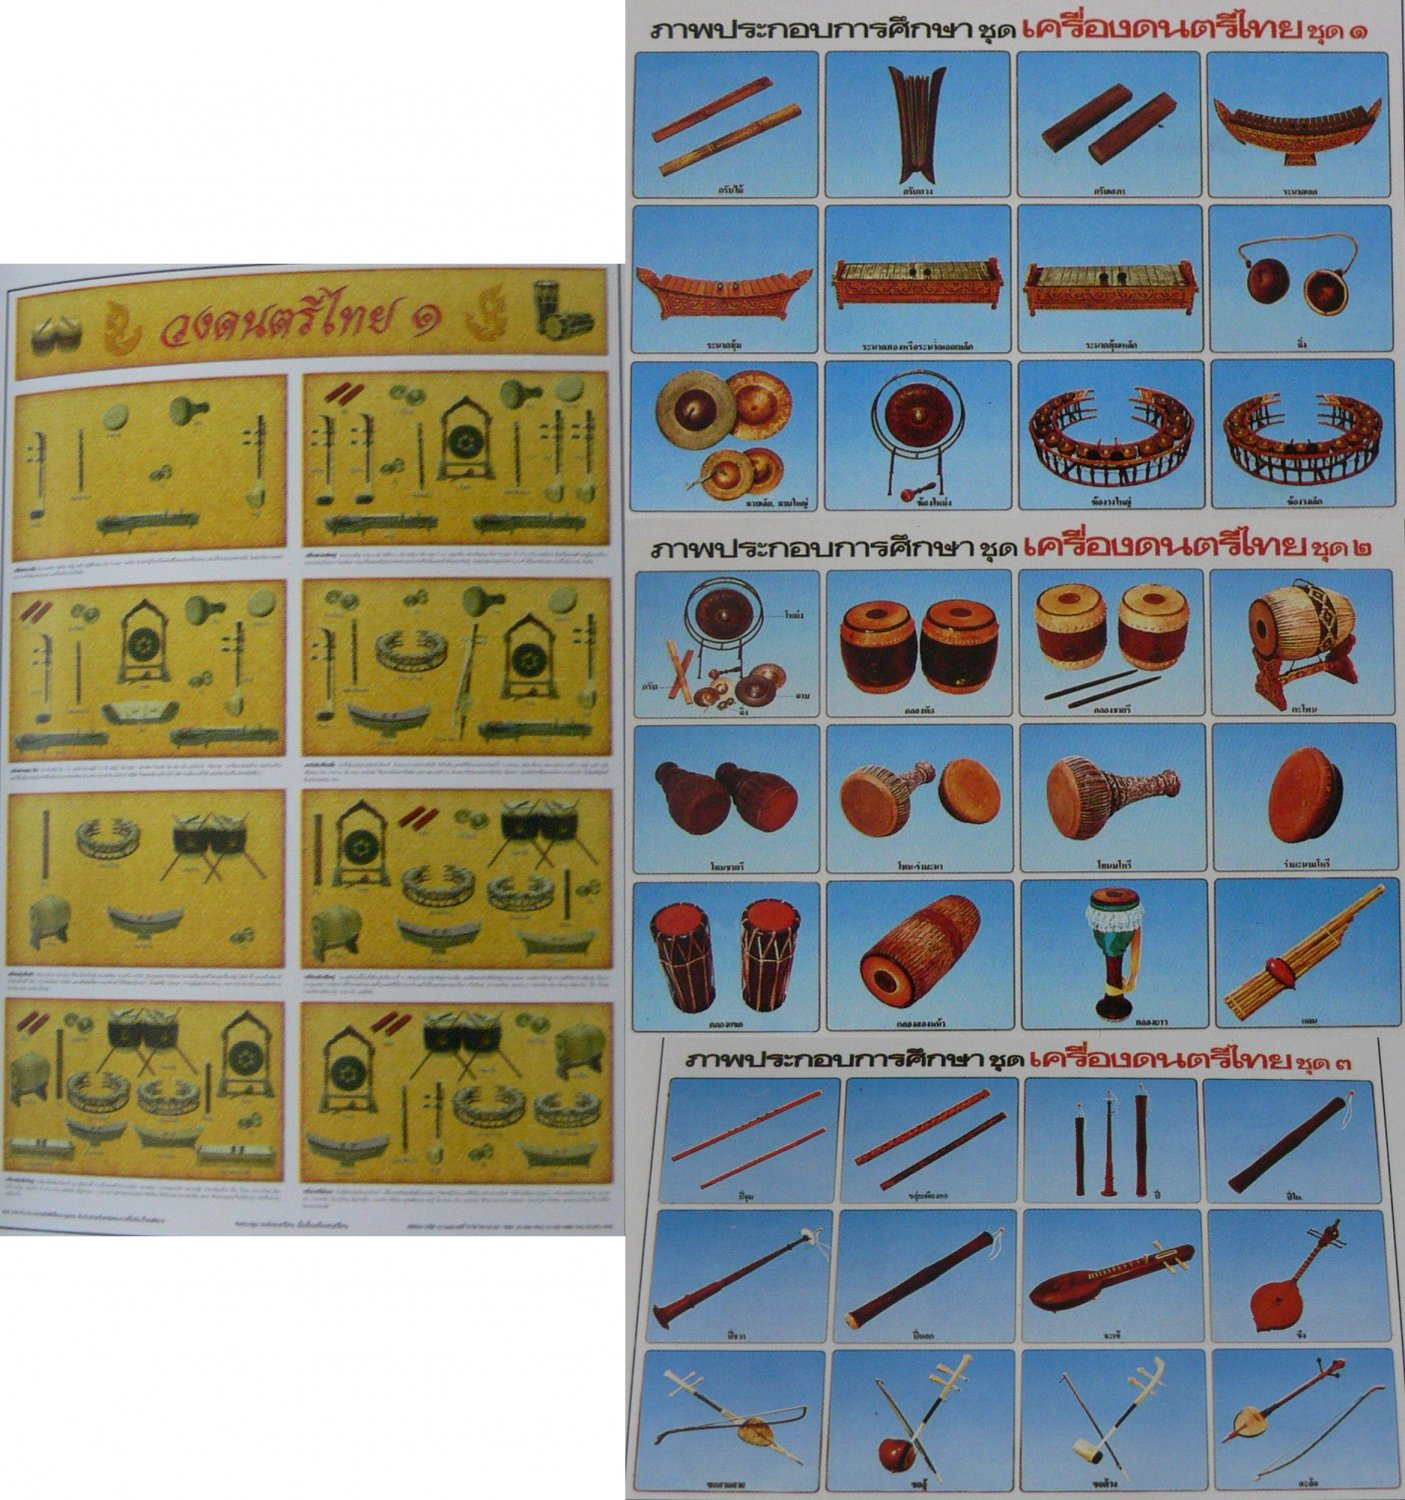 Thai Thailand Music Musical Instrument Xylophone Clappers Violin Guitar Flute Drum Cymbals 4 Poster